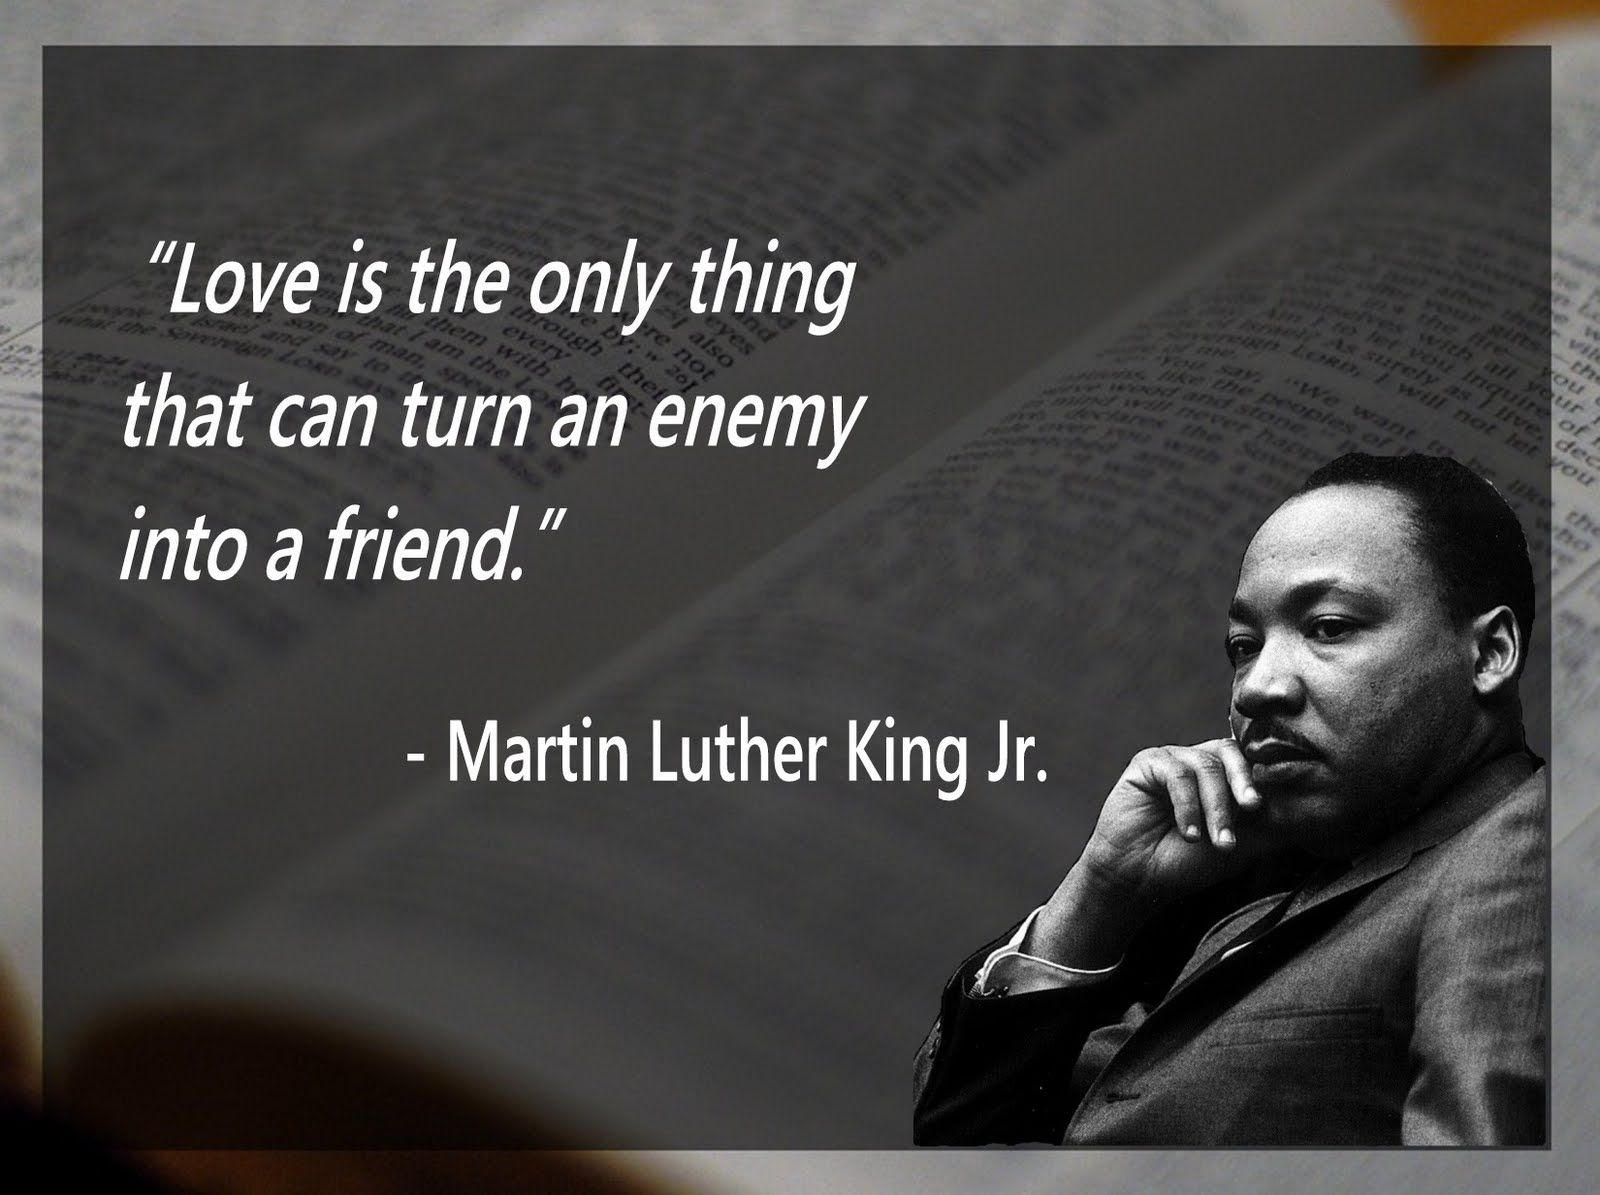 Martin Luther King Jr s quote reminds me of this amazing quote from the